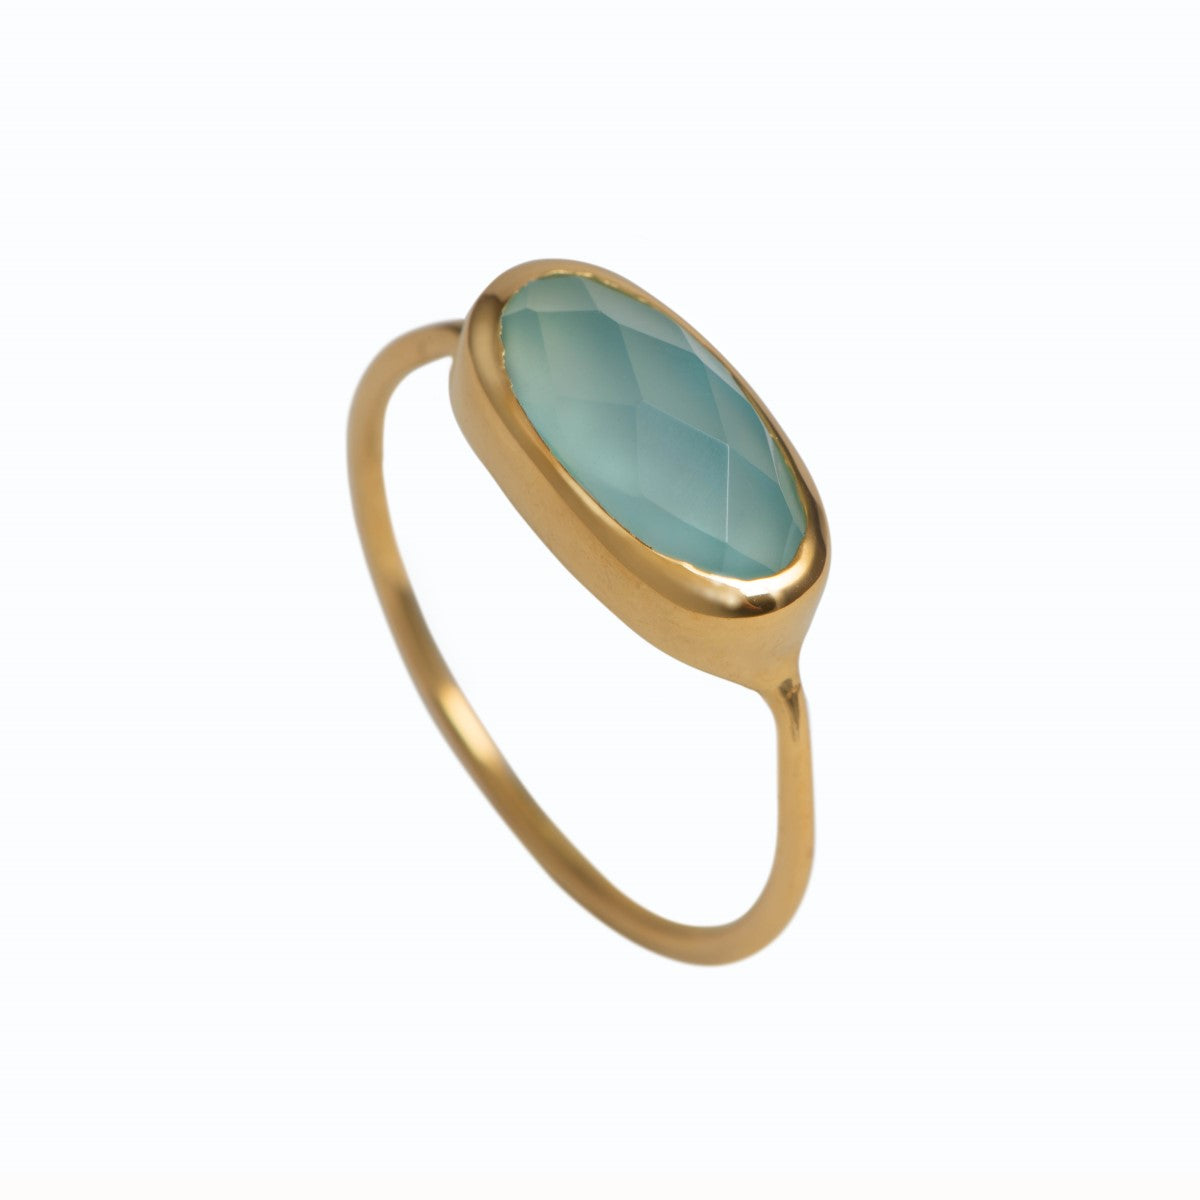 Faceted Oval Cut Natural Gemstone Gold Plated Sterling Silver Fine Band Ring - Aqua Chalcedony